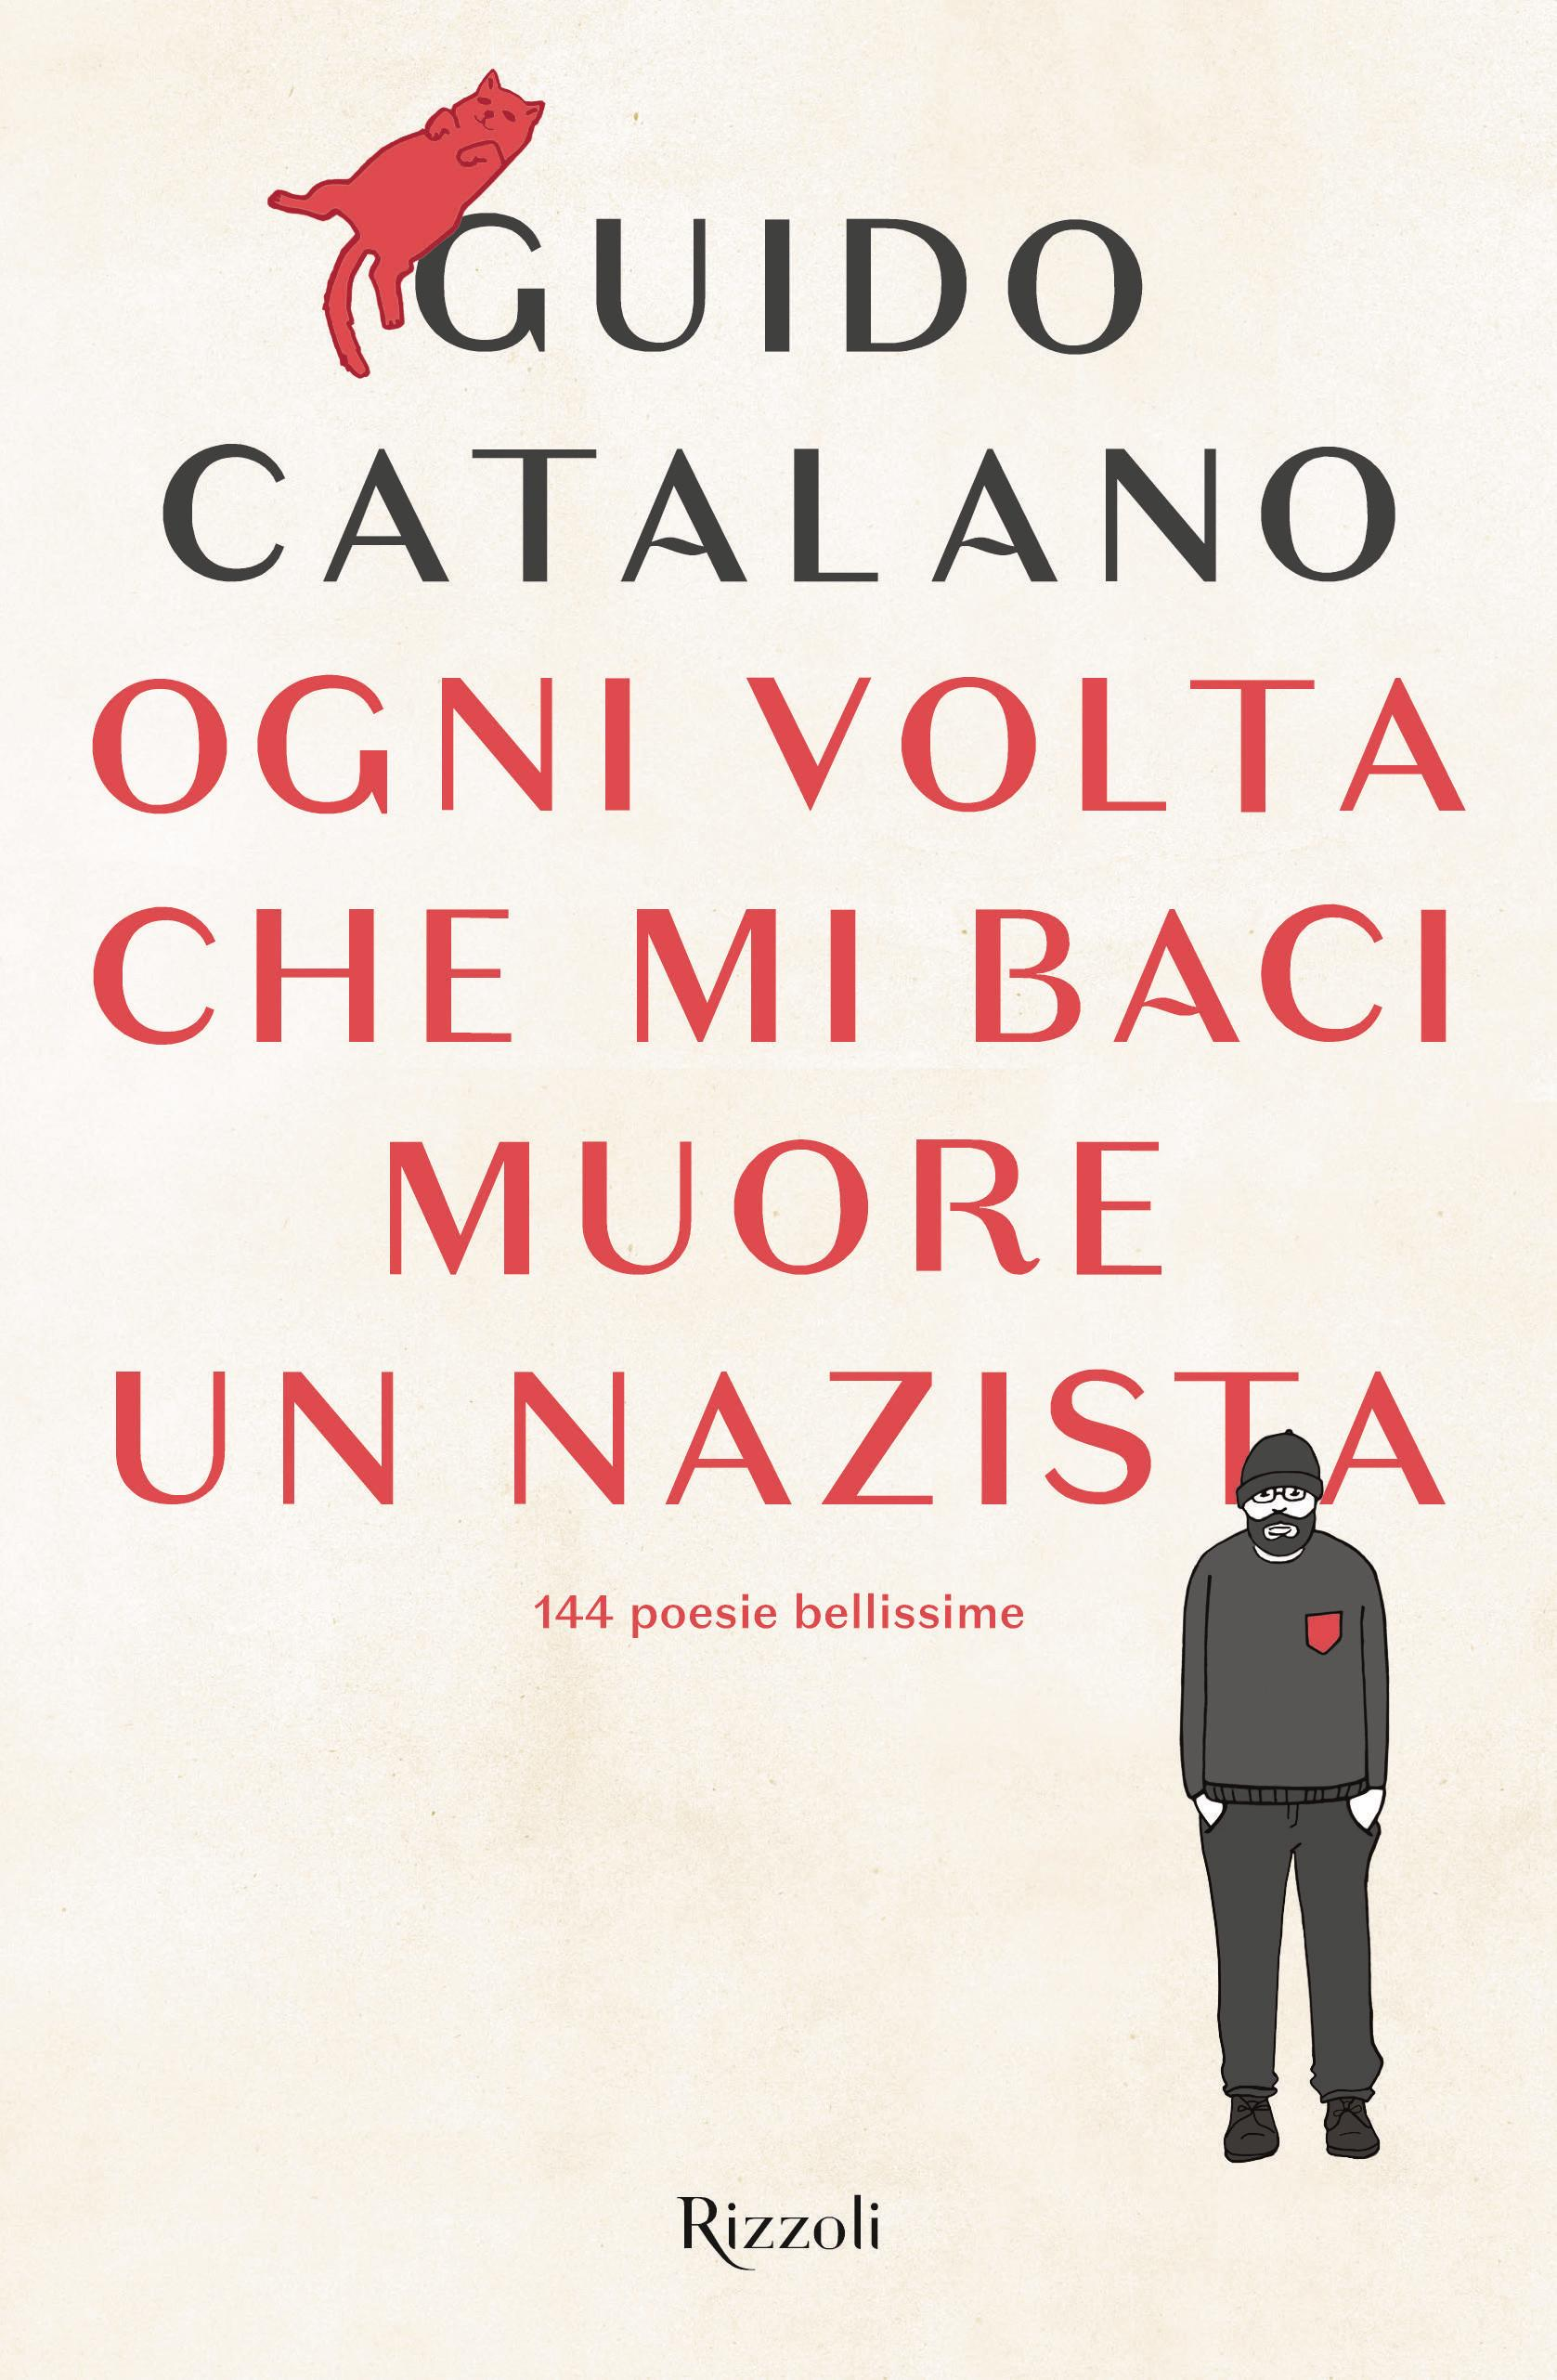 guido catalano baci nazista